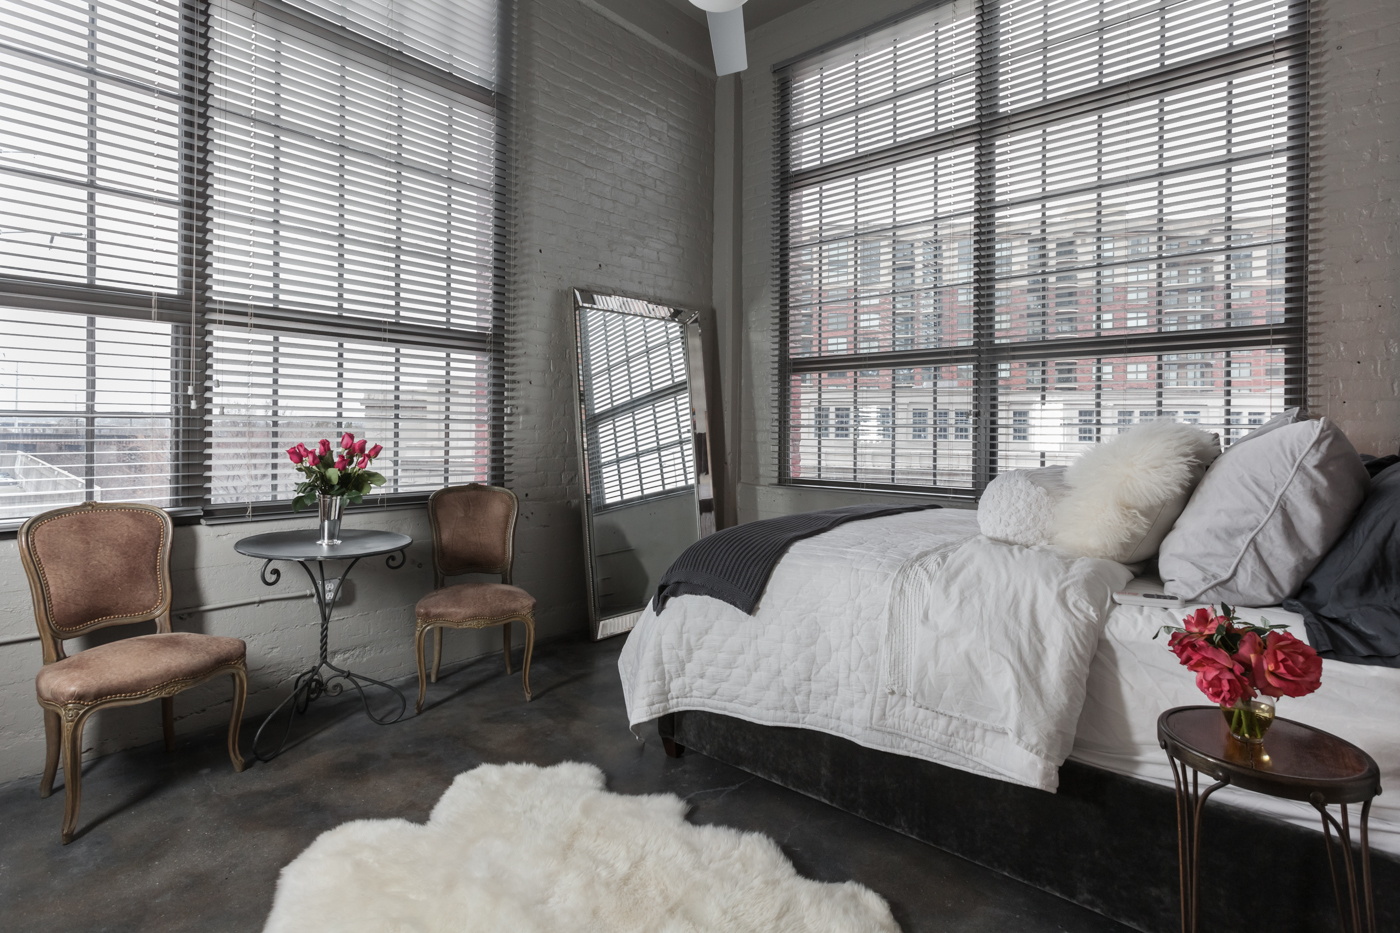 15 urban classy bedroom ideas for your house  genmice